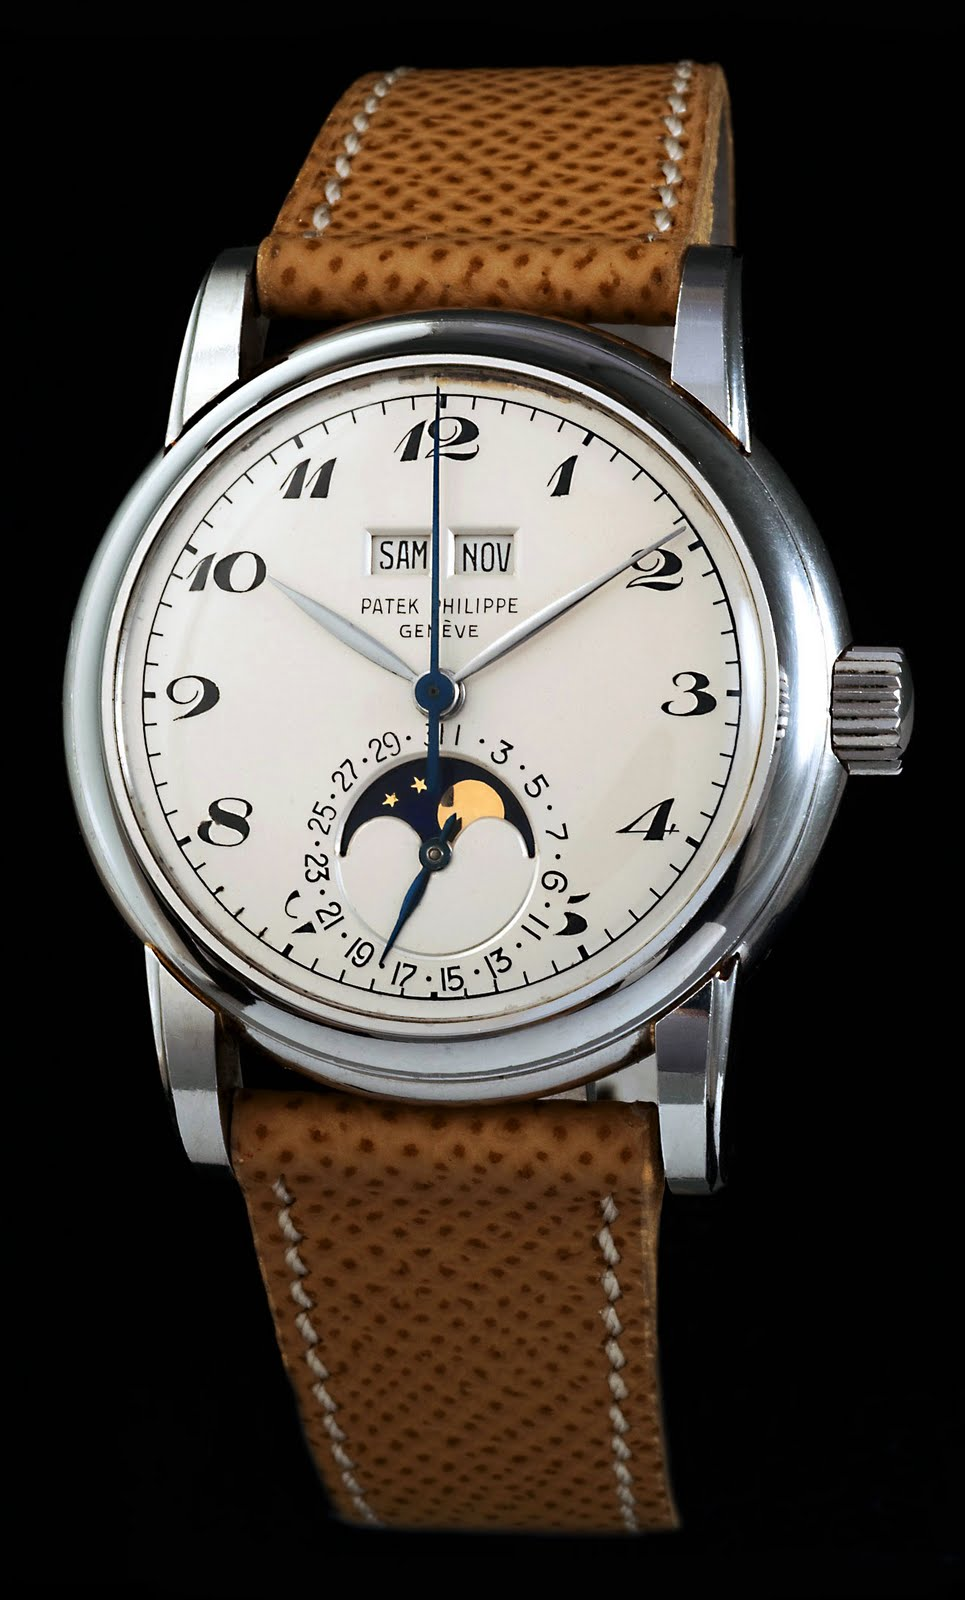 Welcome to of jake 39 s patek philippe world john goldberger 39 s for Patek philippe